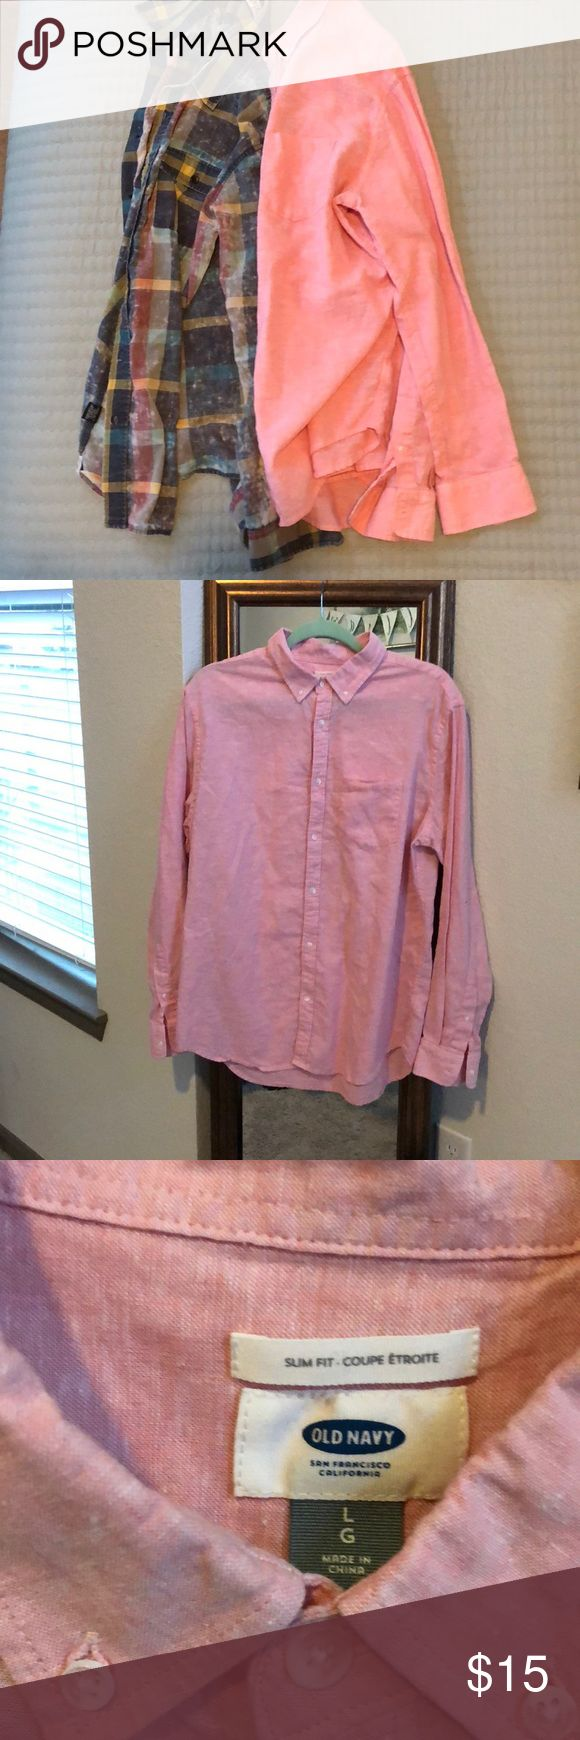 (2) large linen button ups Size = Large  one pink Old Navy and one multi-color checkered Ezekiel  ***used condition*** Old Navy Shirts Casual Button Down Shirts